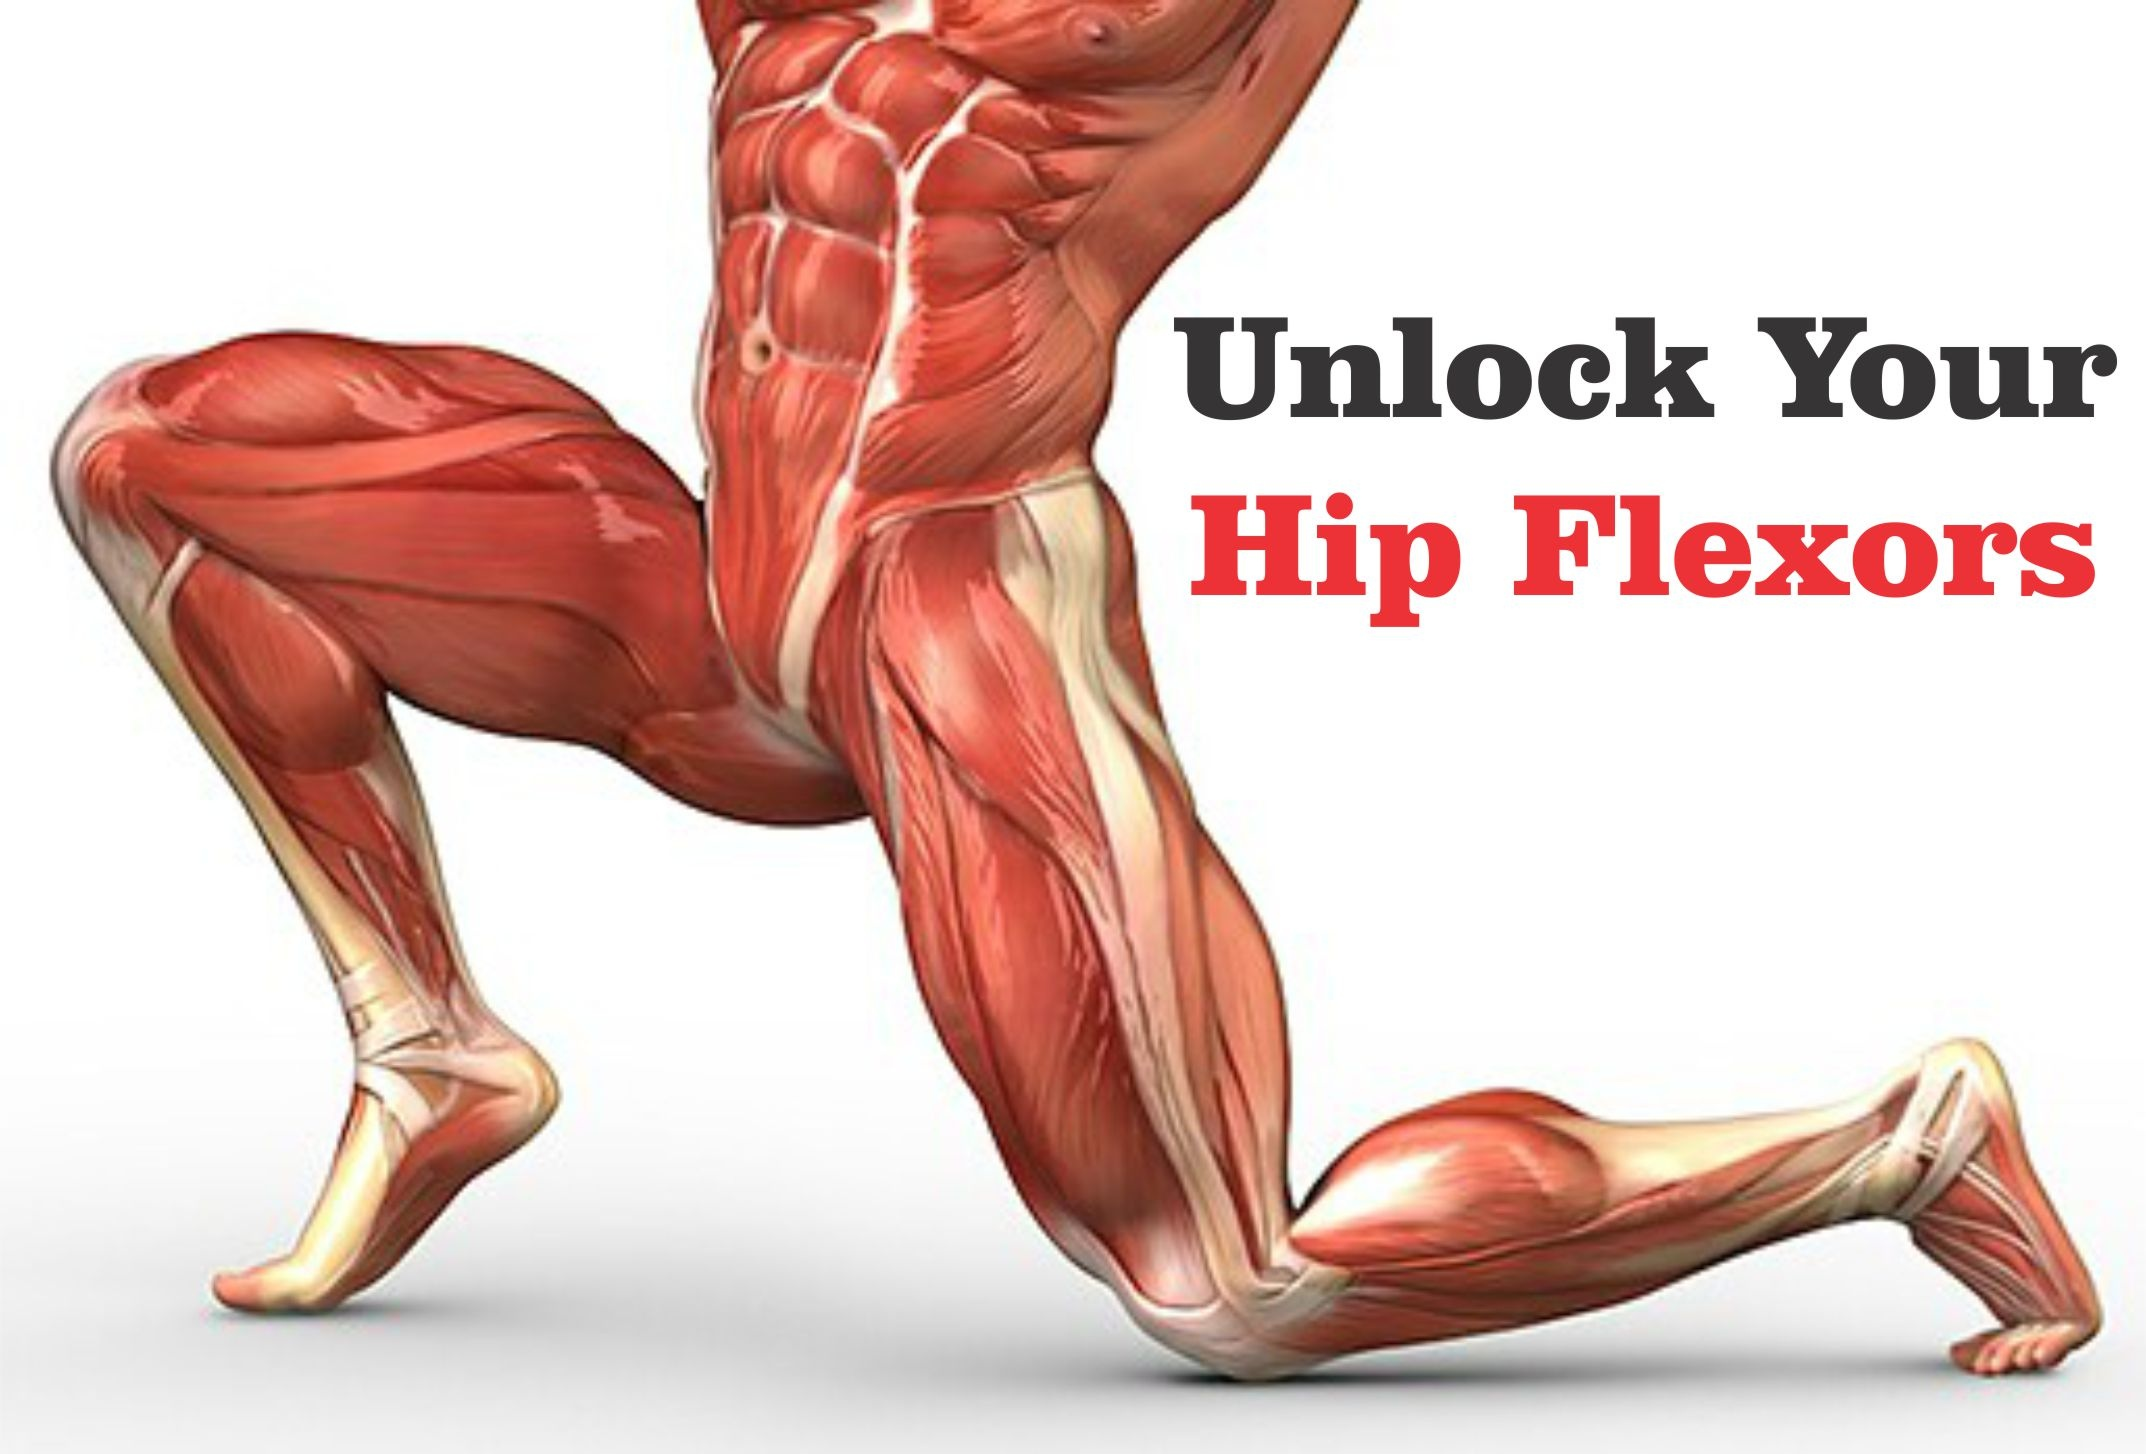 Hip Flexor Strain Symptoms